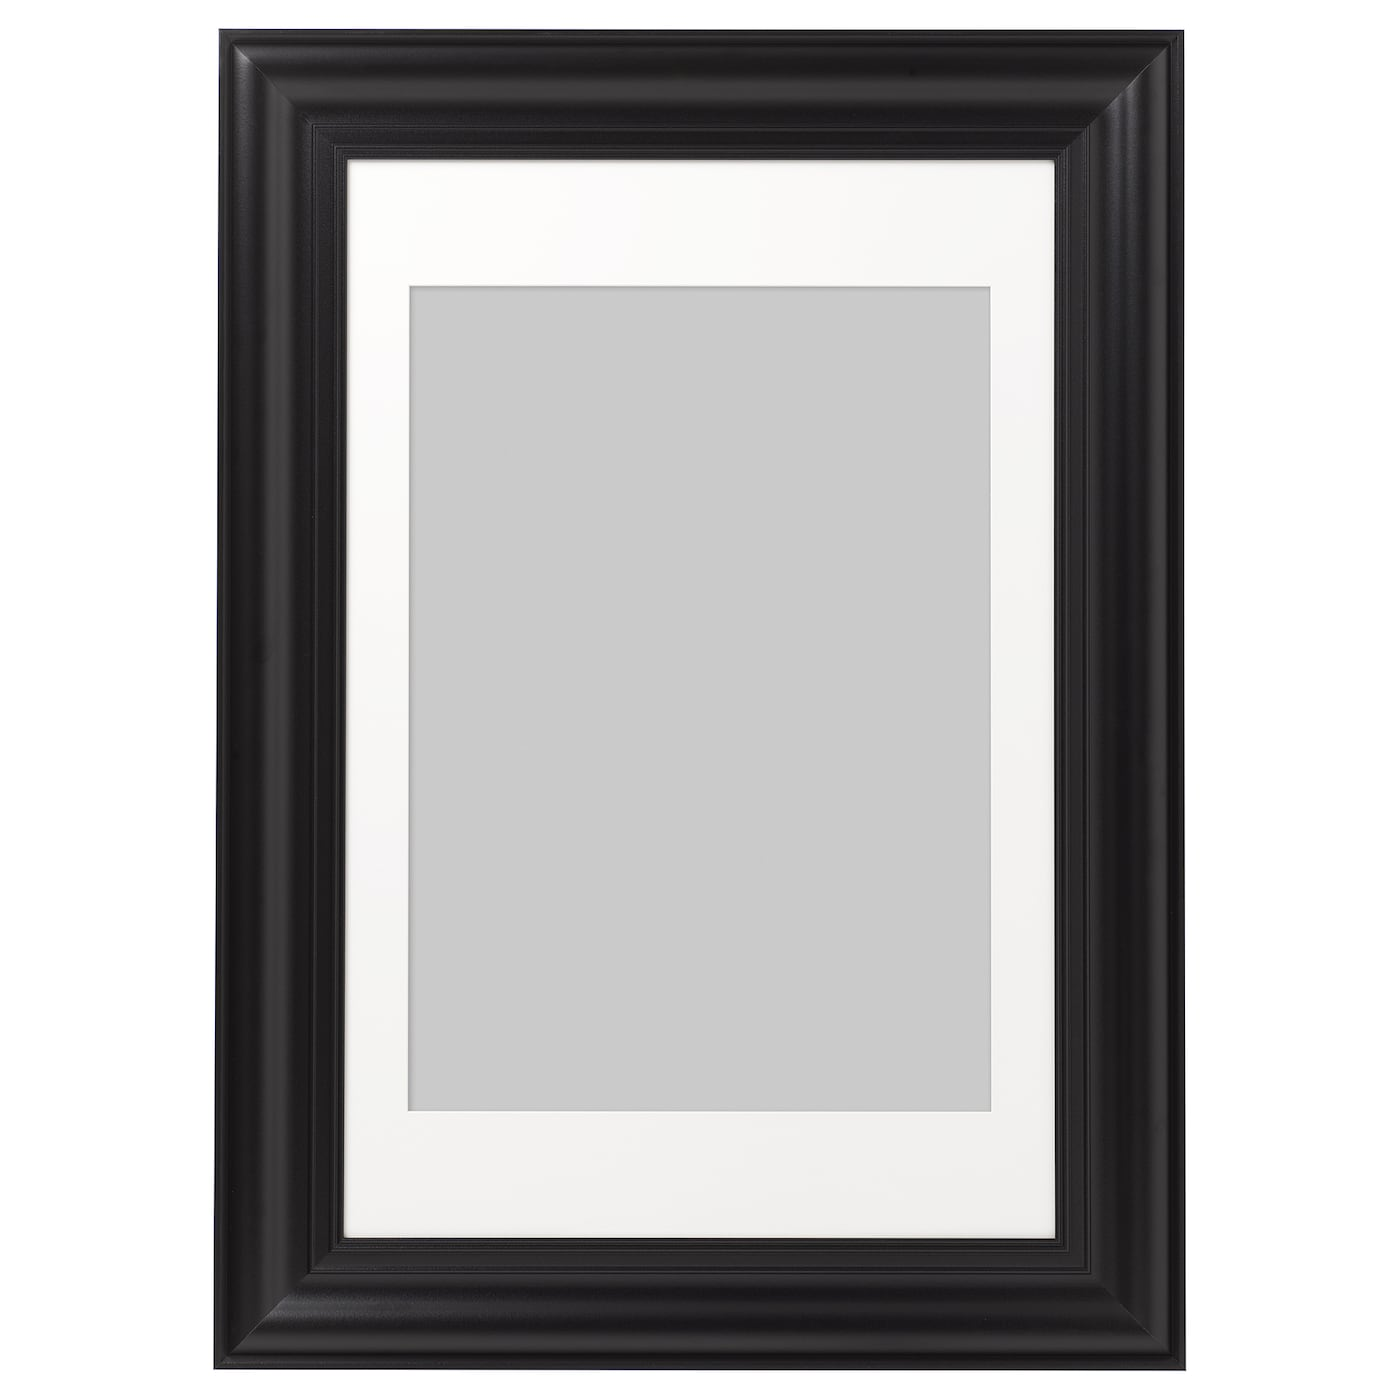 IKEA SKATTEBY frame Available in different sizes. PH-neutral mount; will not discolour the picture.